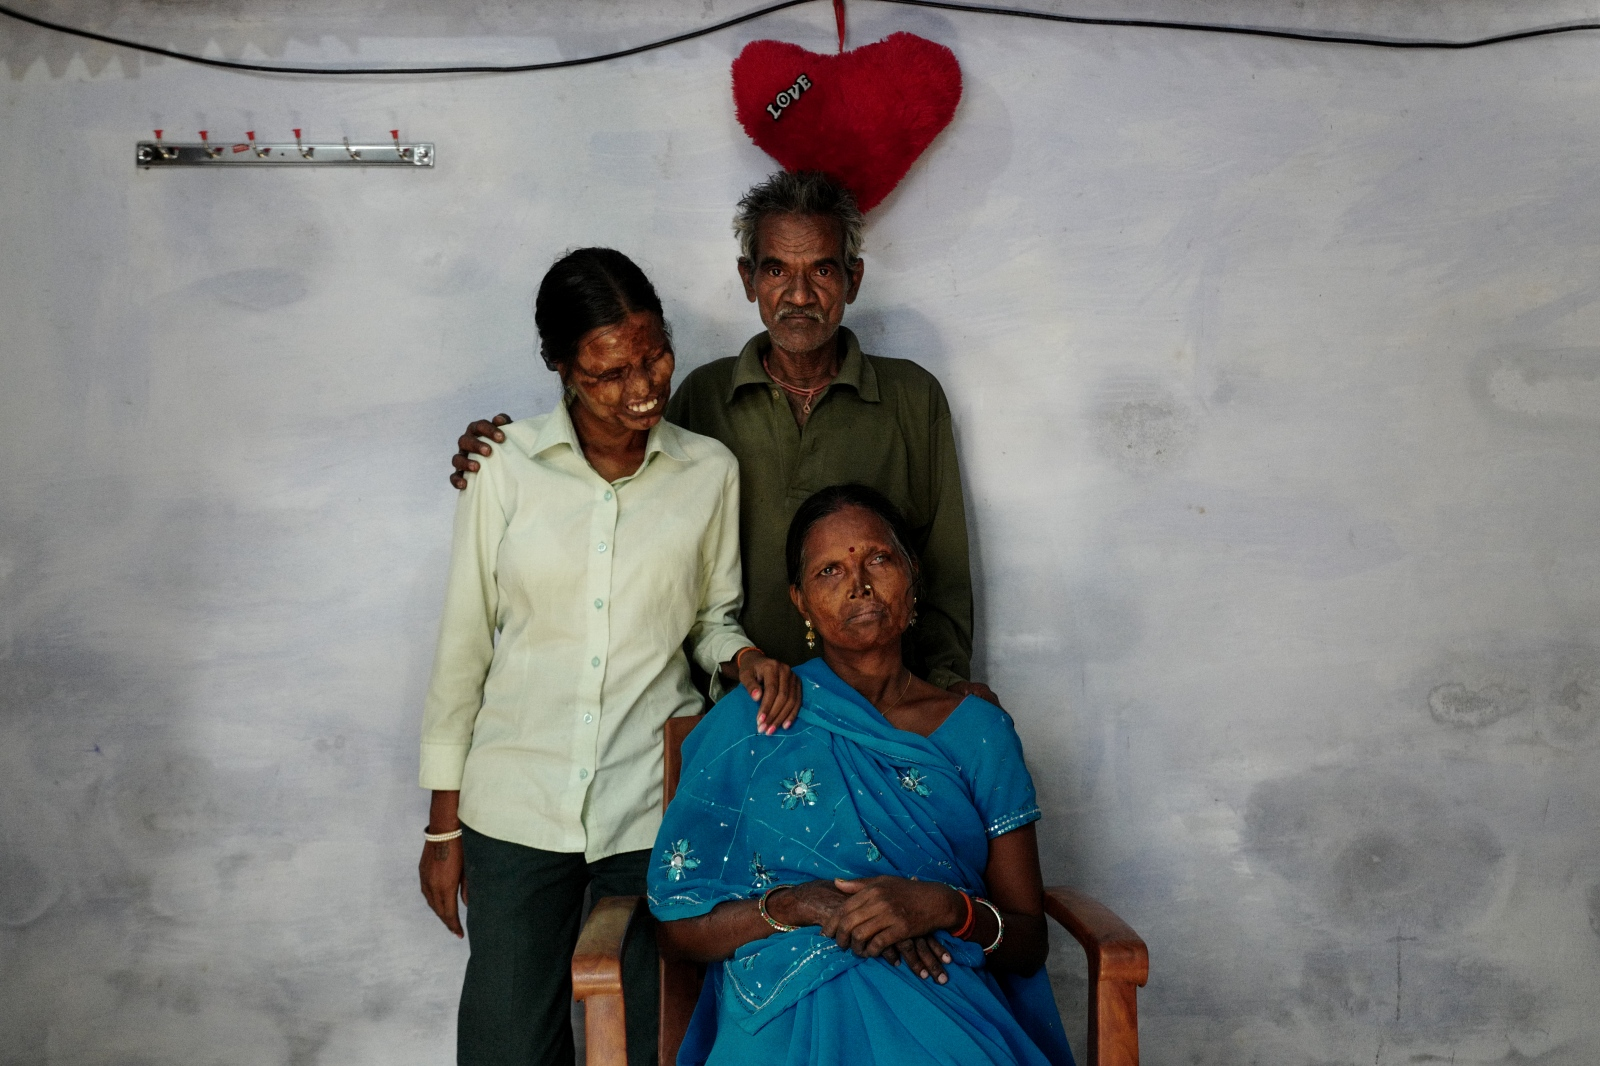 A gra, India. November 11, 2016. Neetu 27, Geeta 50 and Indrageet 50 husband and father who attacked them in 1992, posing for a family portrait in their home in Shahganj, Agra. They continued living together even after the attack followed by Geeta's forgiveness.